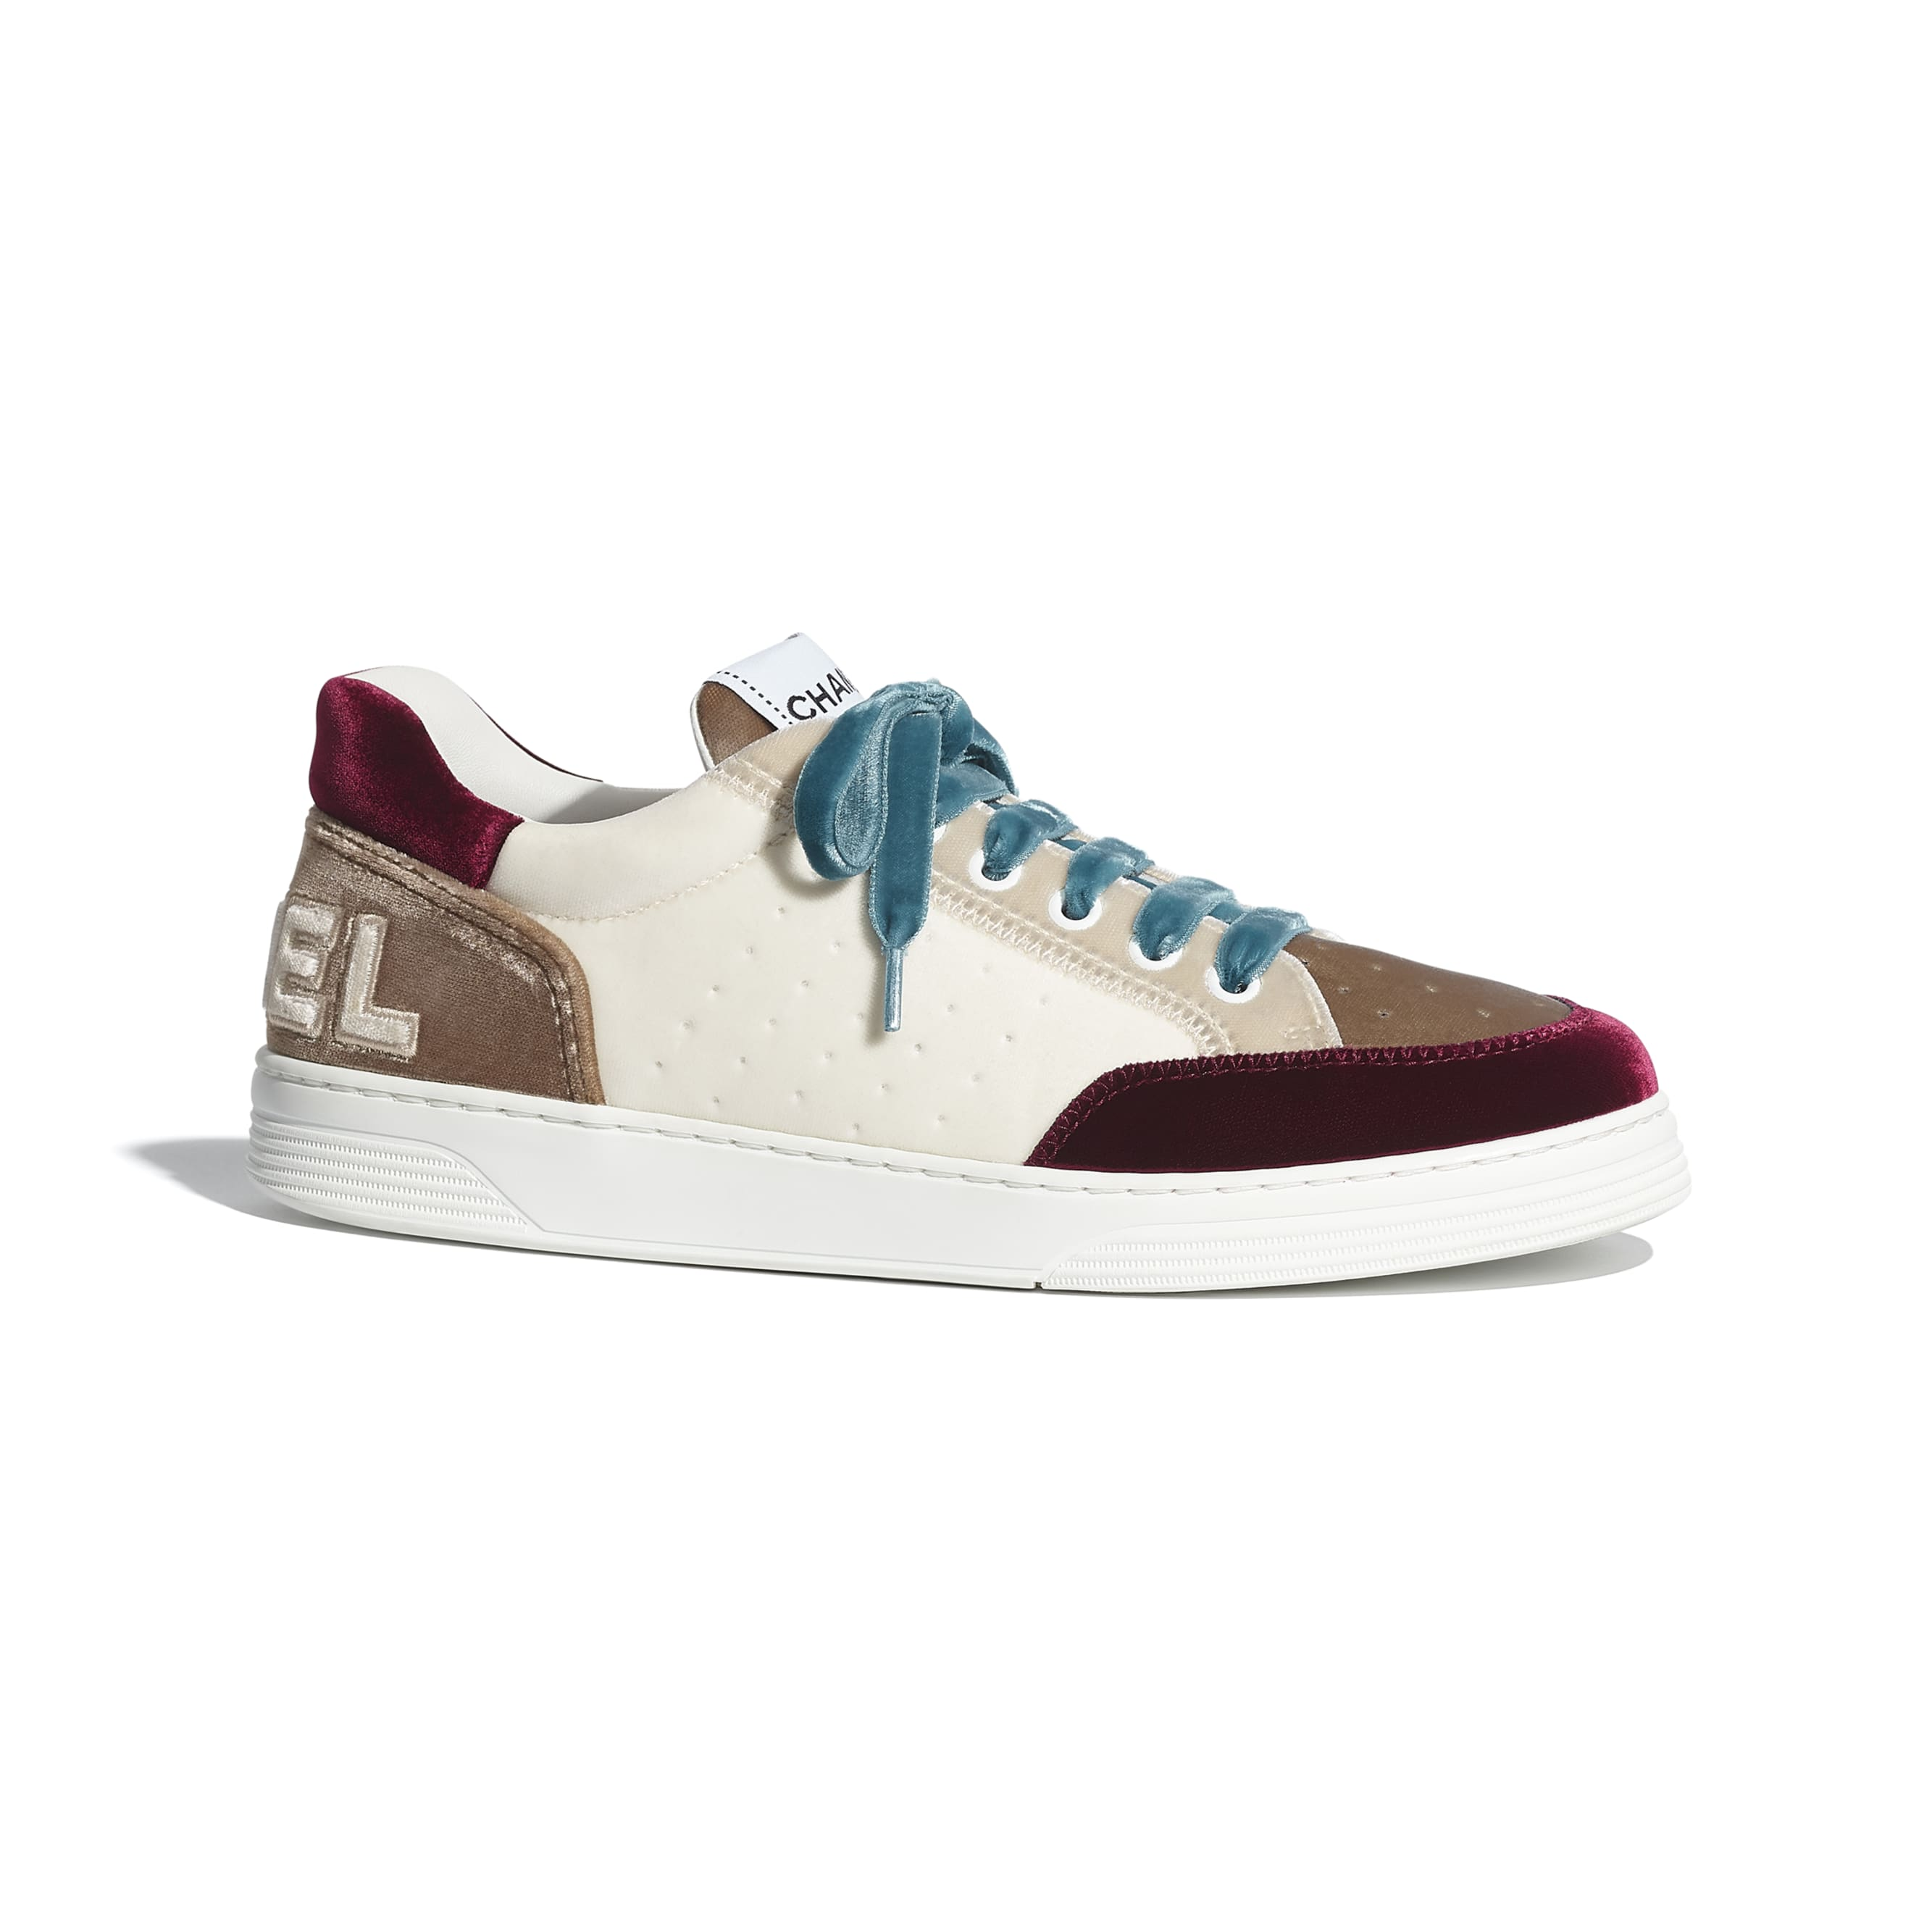 Trainers - White, Beige & Burgundy - Velvet - CHANEL - Default view - see standard sized version